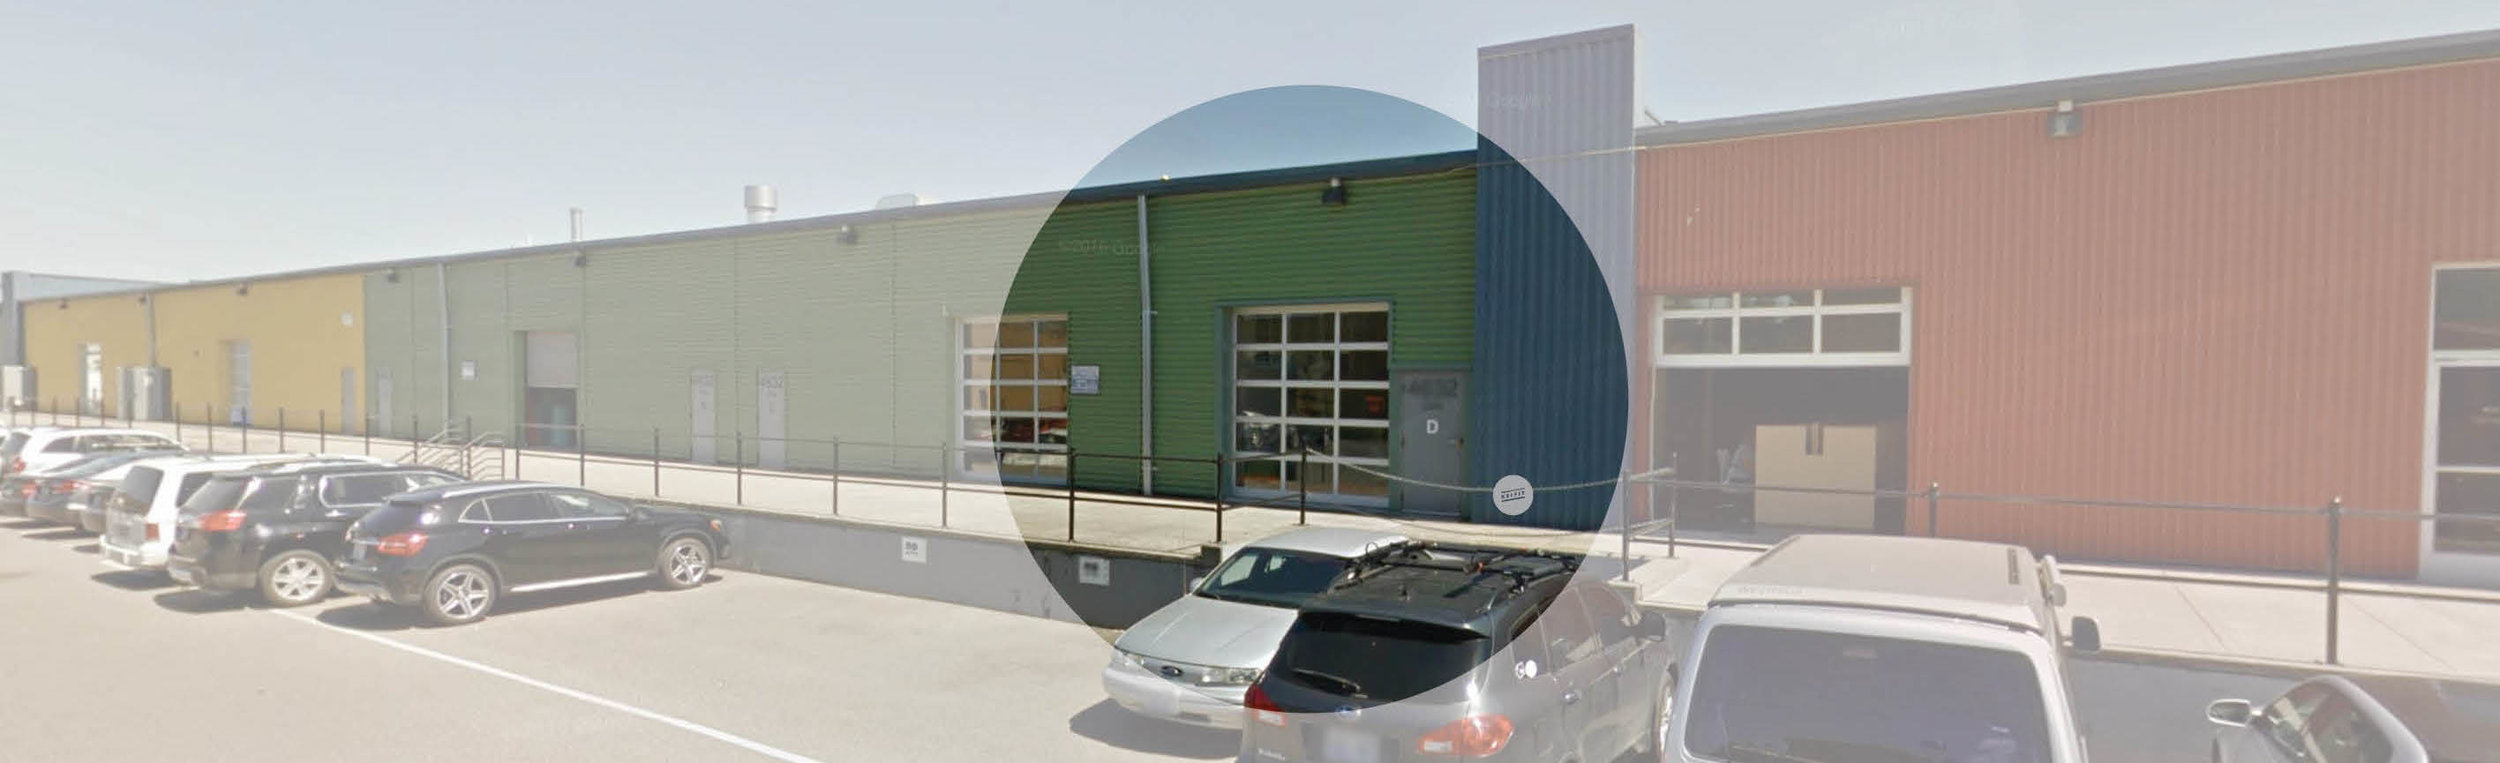 We are located behind Arena Sports SODO, just off Marginal Way. Park anywhere in front of our green building.